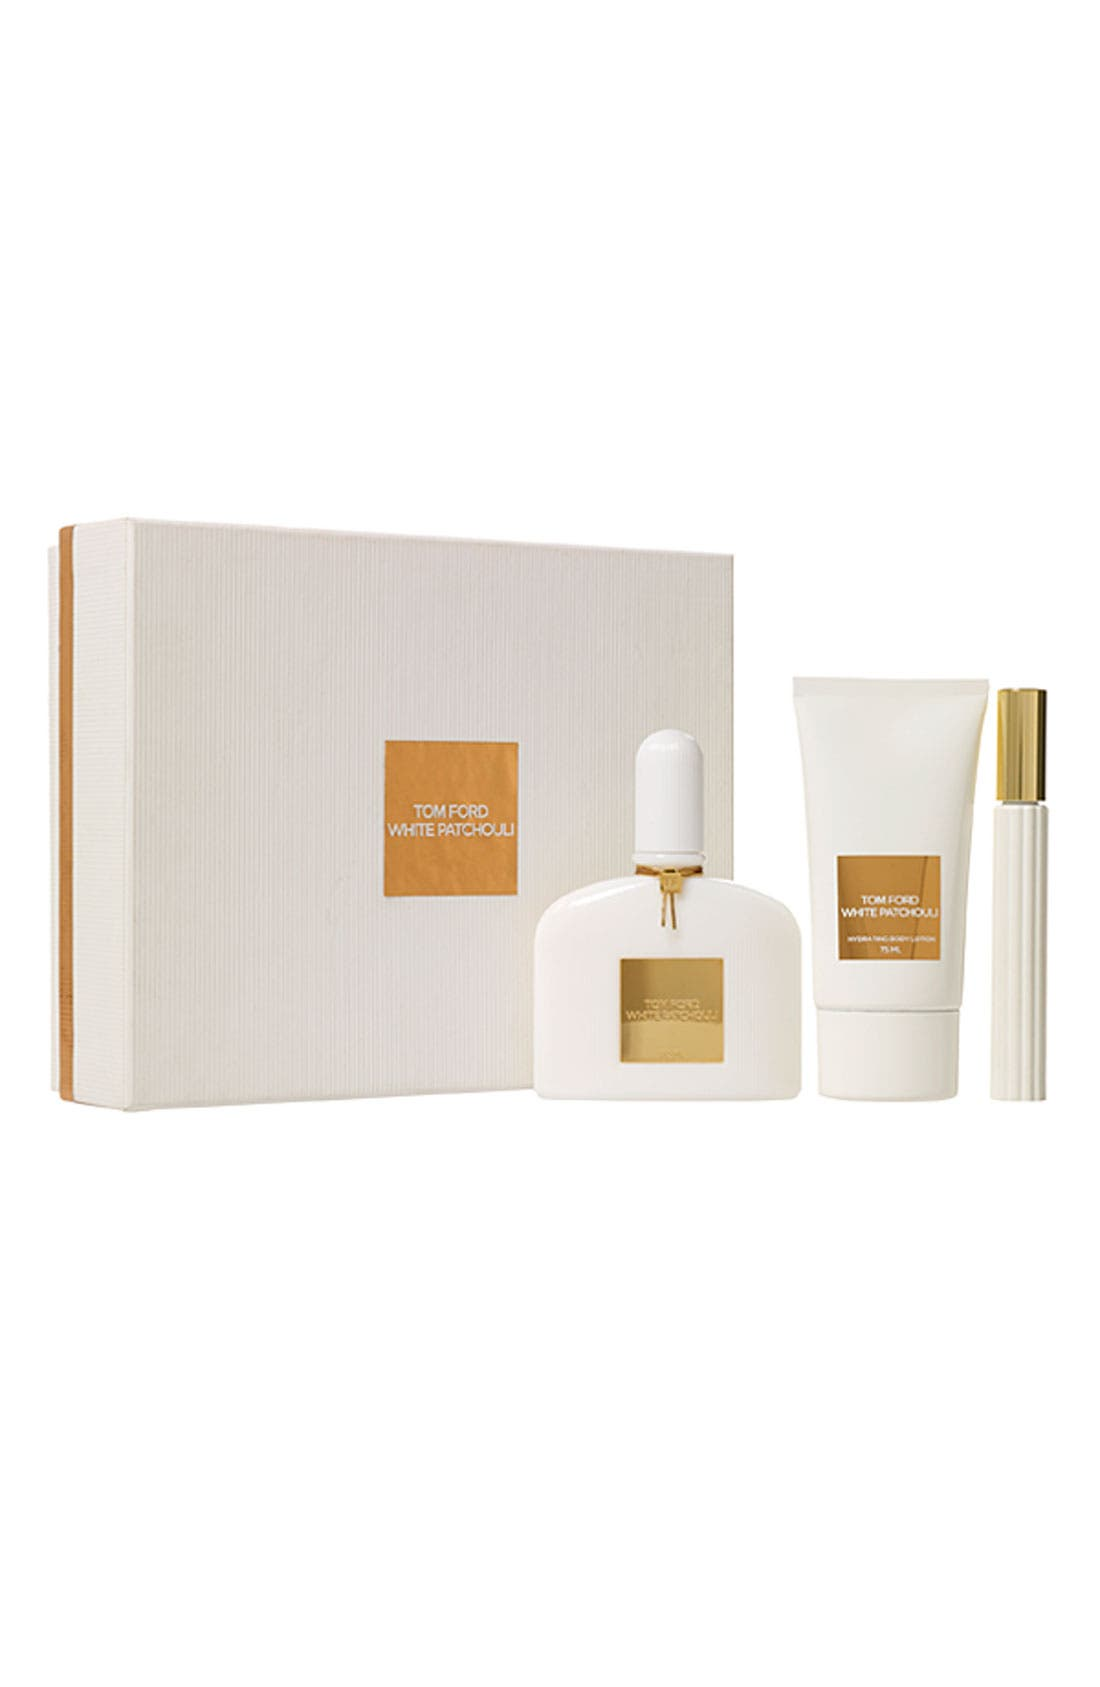 TOM FORD,                             'White Patchouli' Gift Set,                             Main thumbnail 1, color,                             000